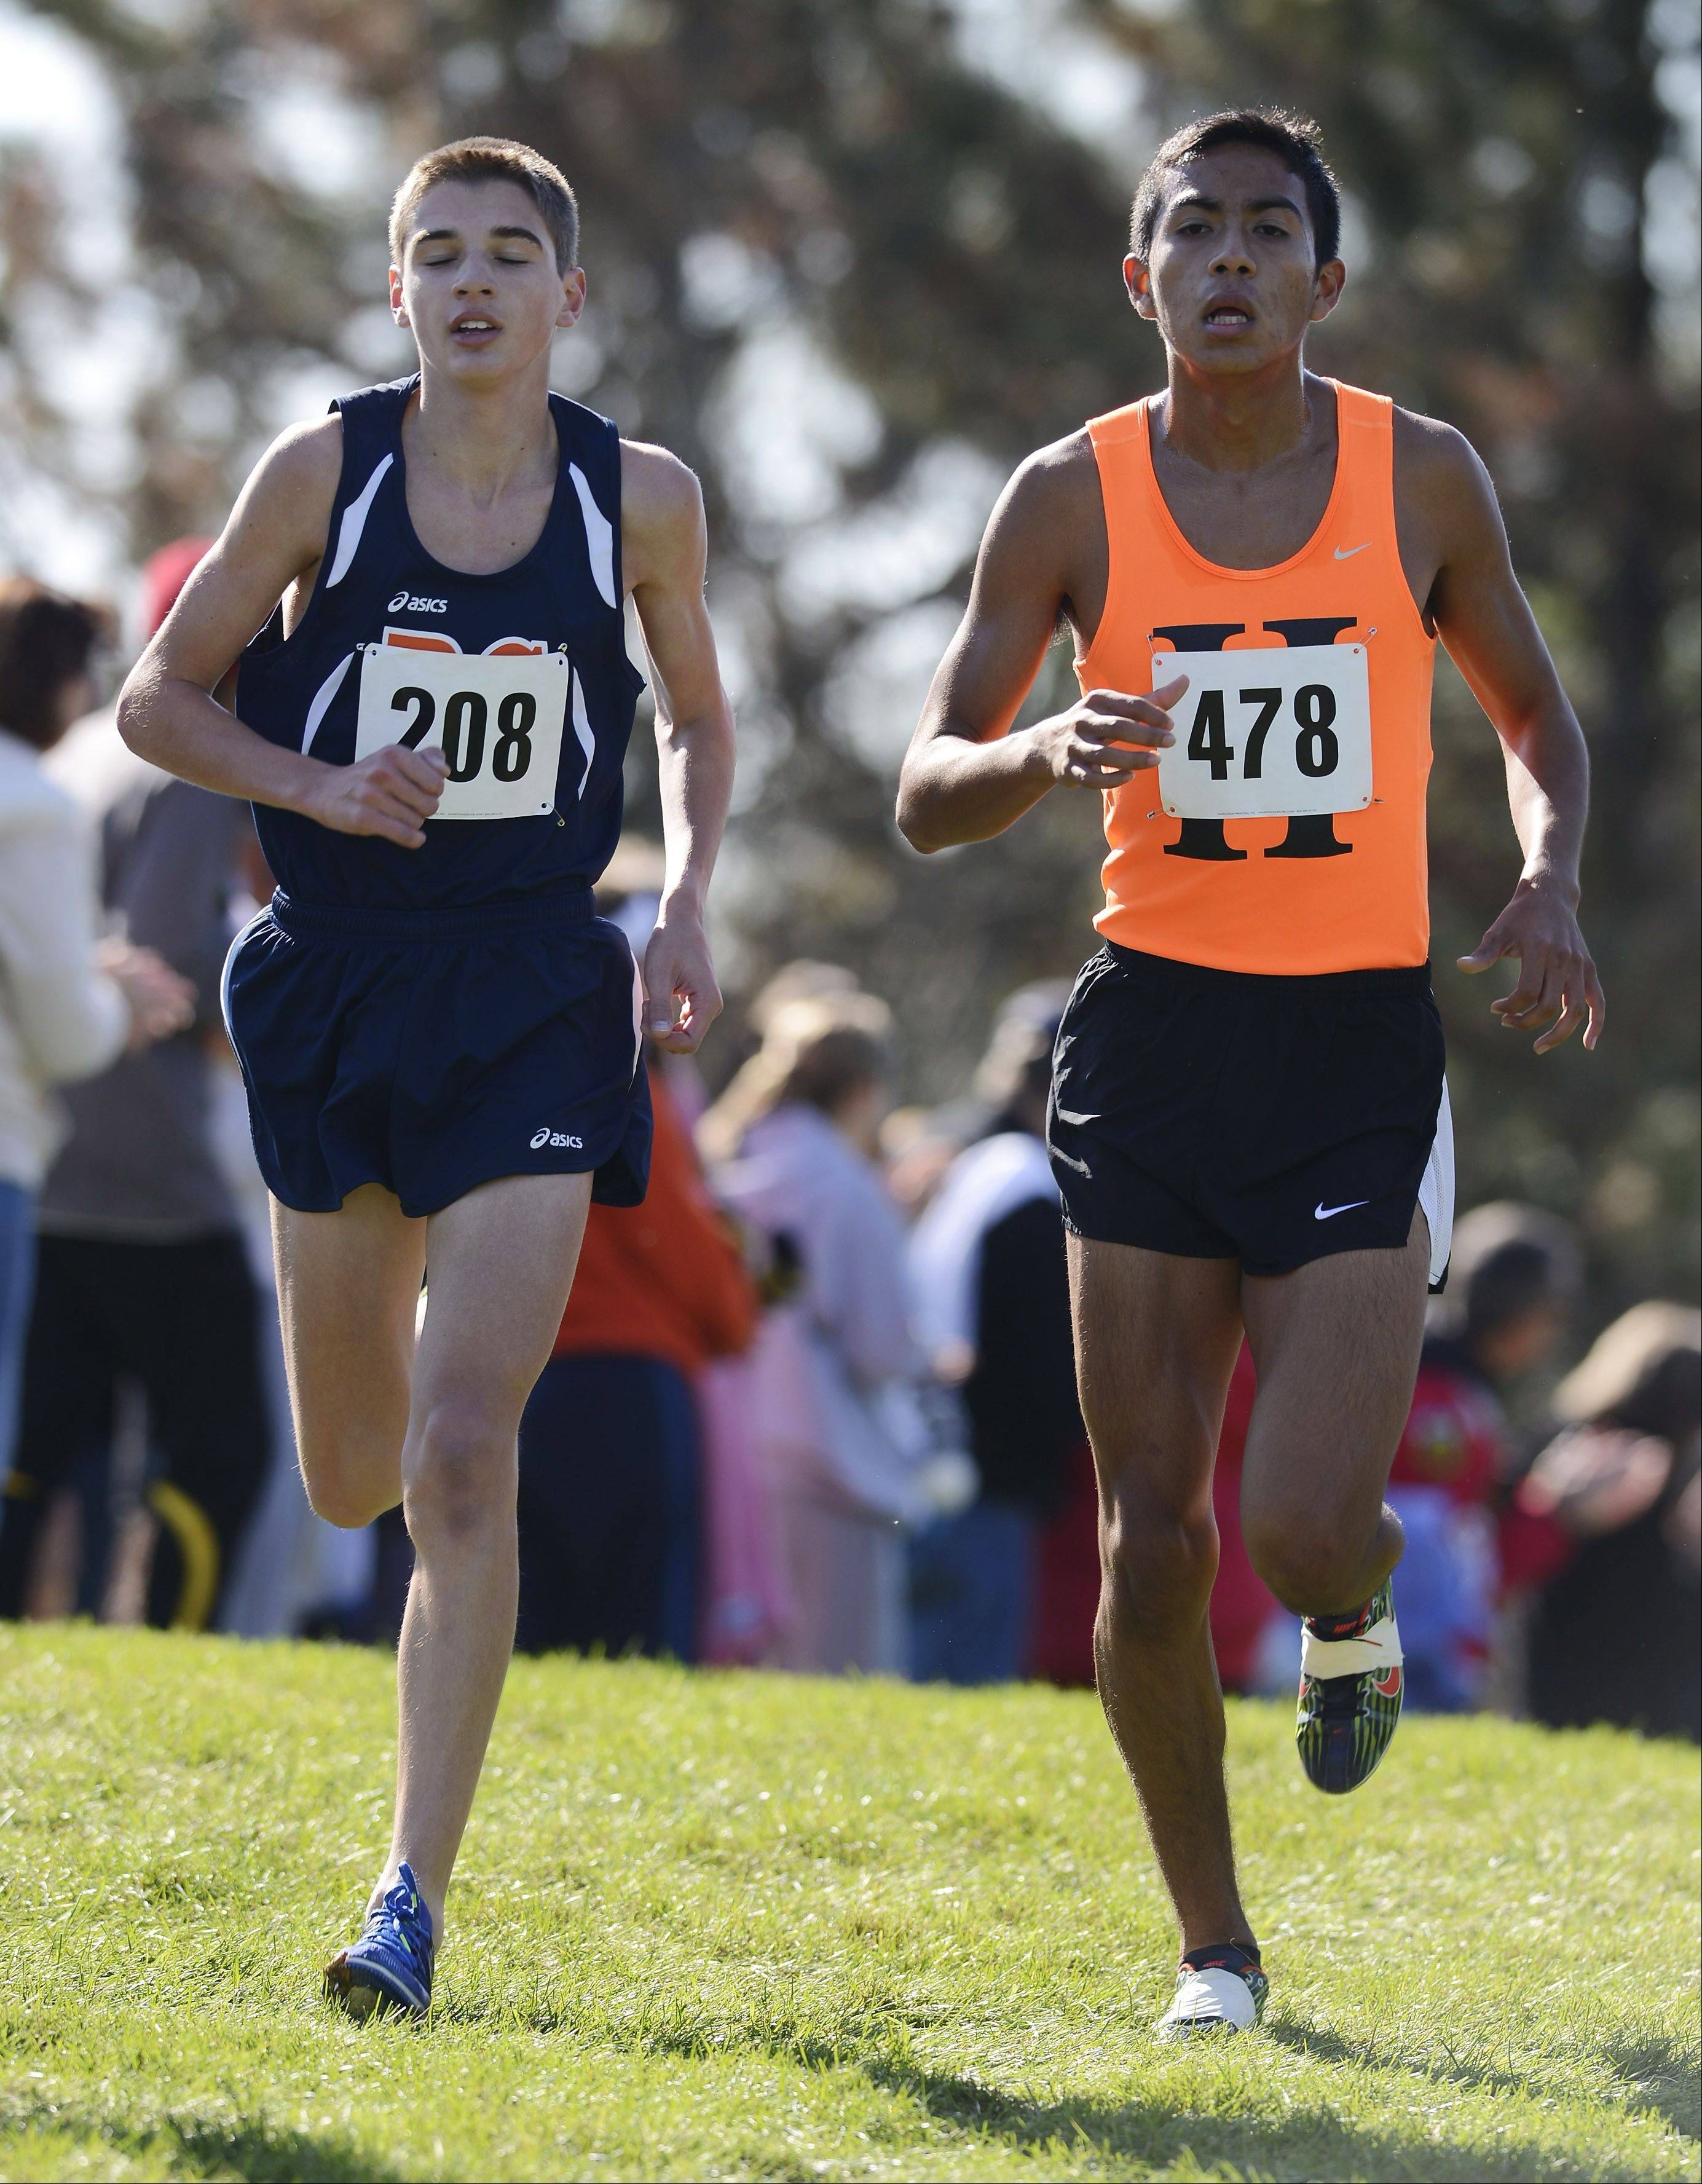 Buffalo Grove senior Kevin Salvano, left, and Hersey junior David Rodriguez run alongside one another during the Mid-Suburban League cross country meet at Willow Stream Park.